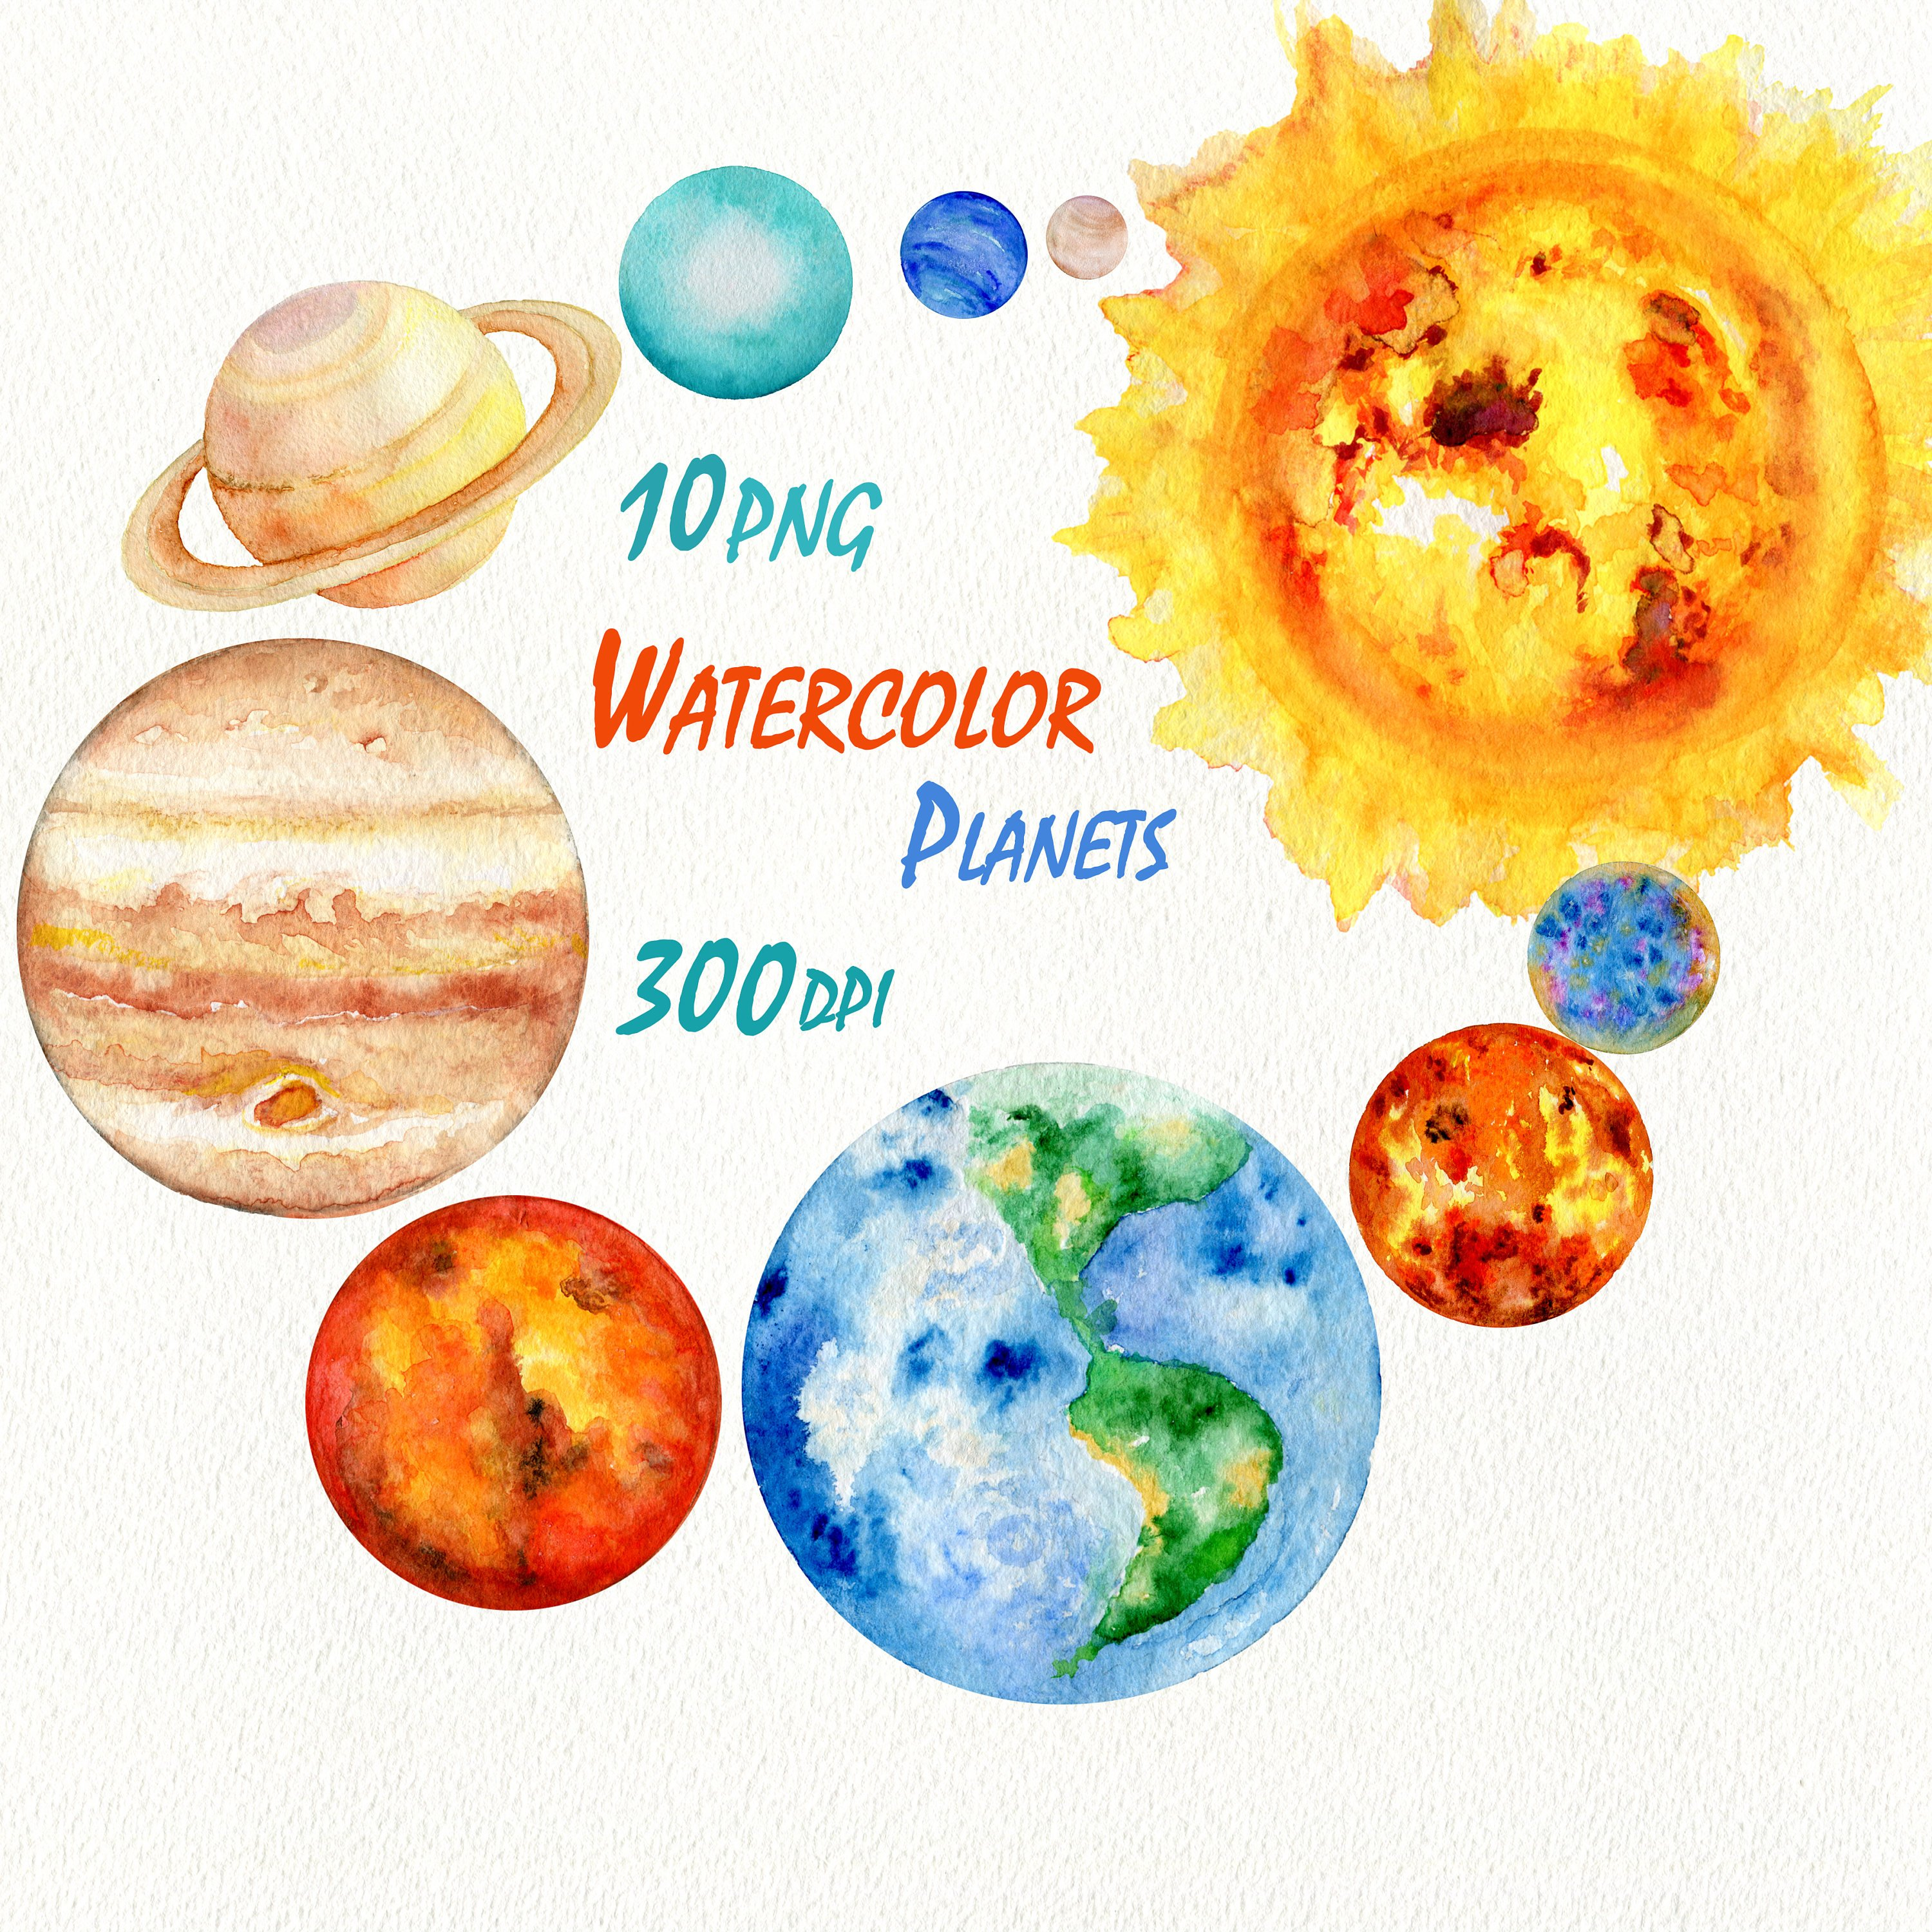 Planets solar system watercolor. Universe clipart